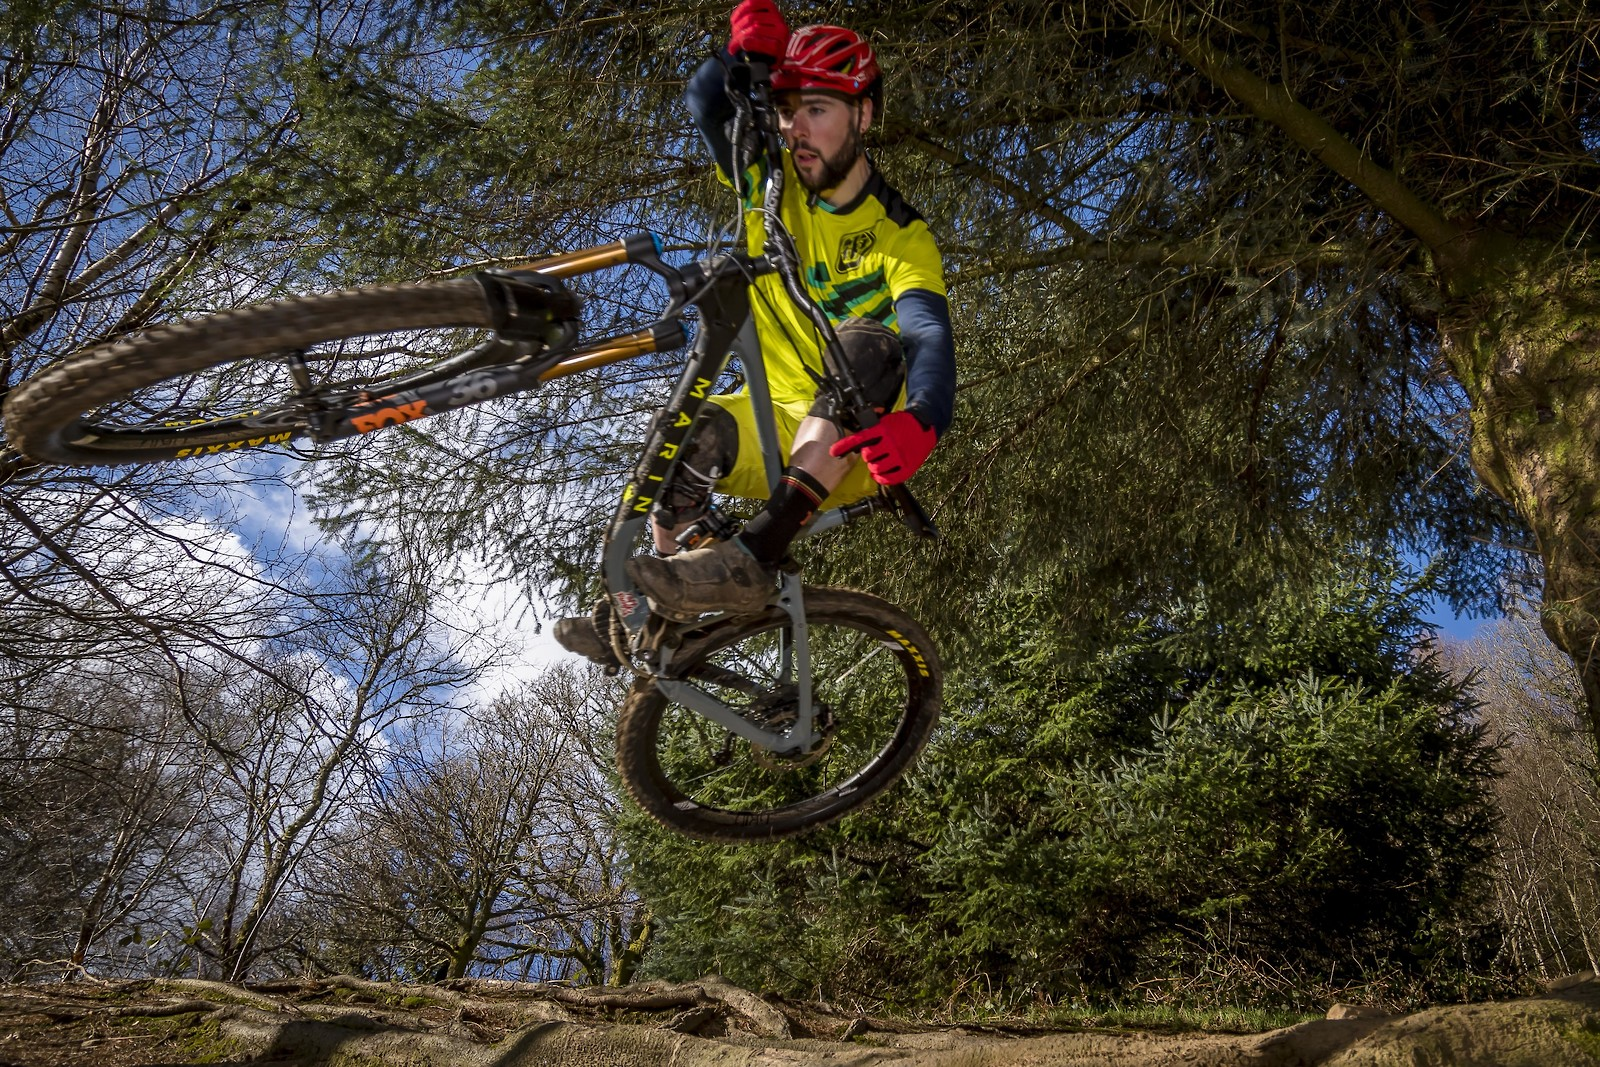 DSC0292 - robbarkerimages2017 - Mountain Biking Pictures - Vital MTB